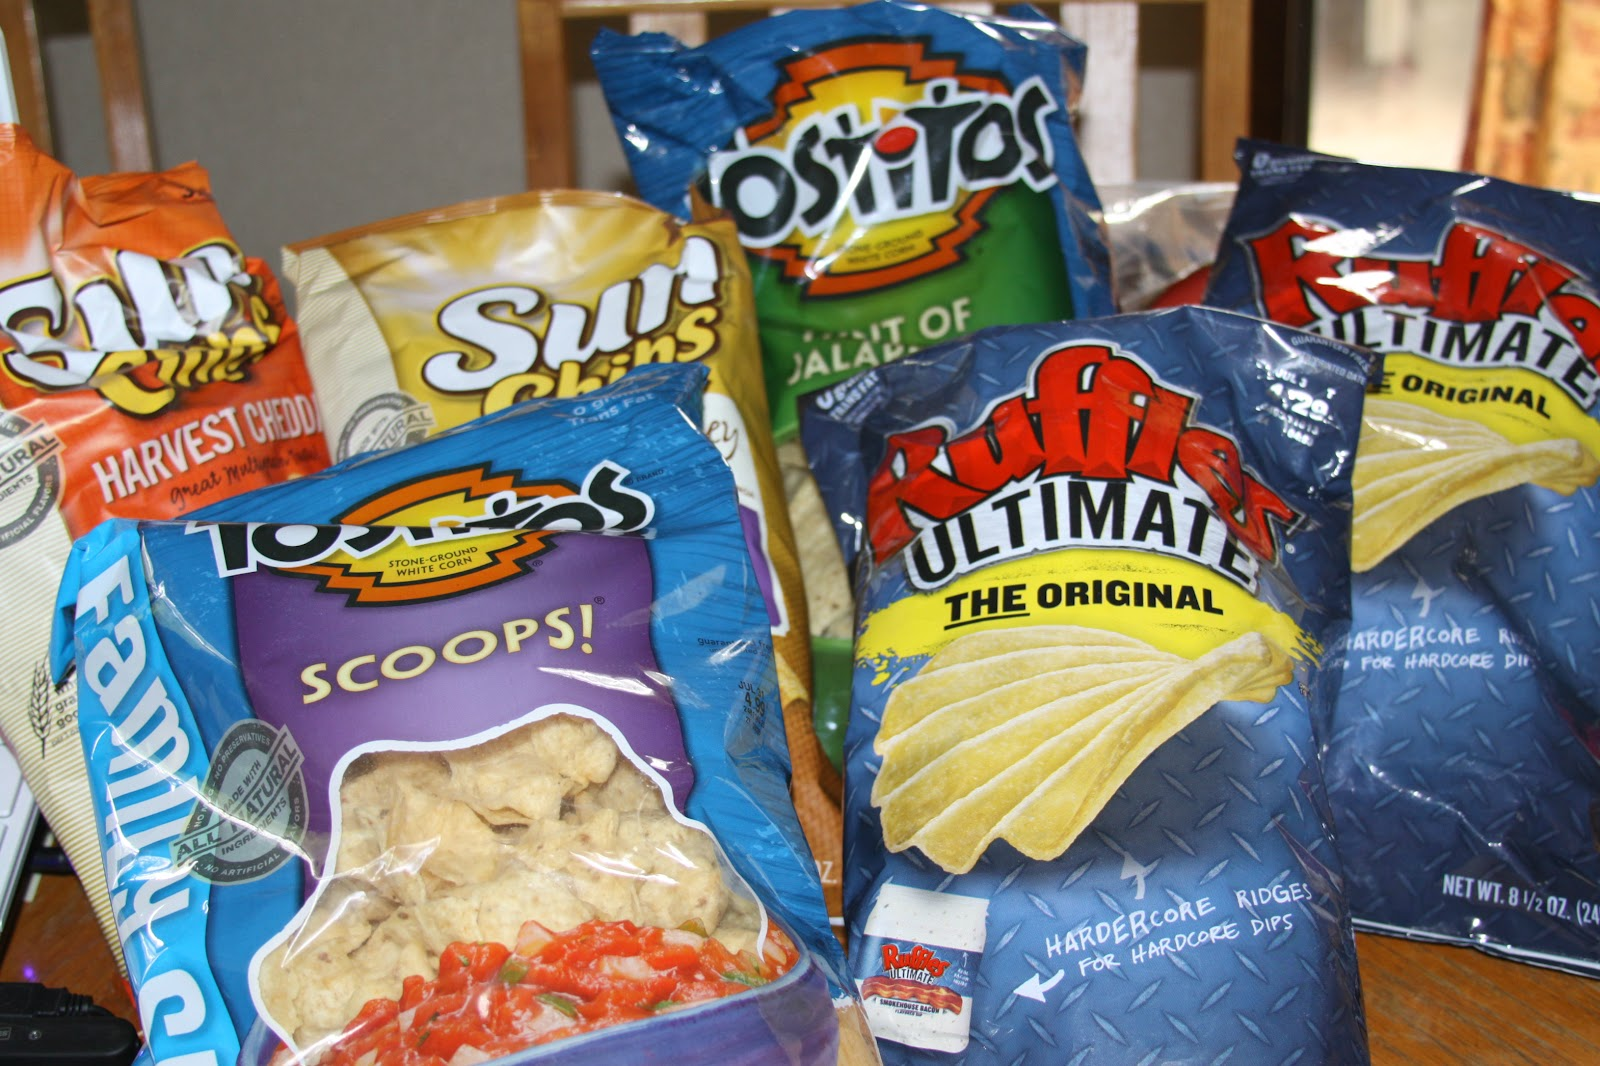 frito lay and snack foods